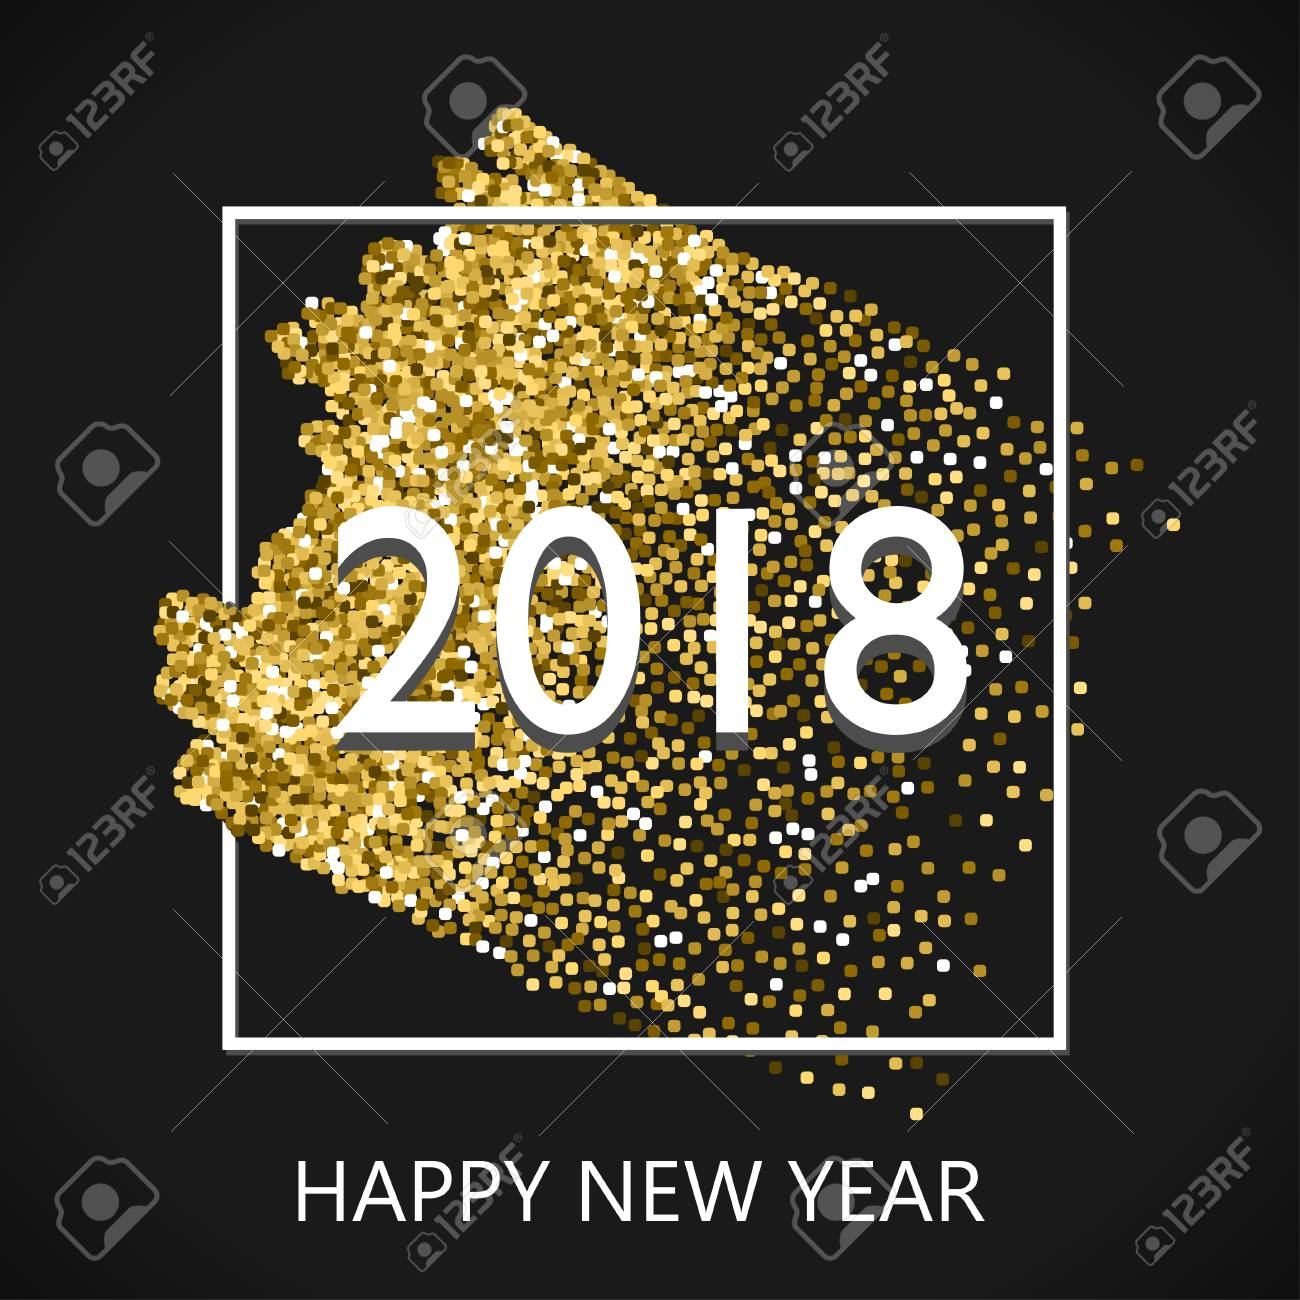 Happy New Year 2018 Gold Design With Glitter Stroke Brush On ...